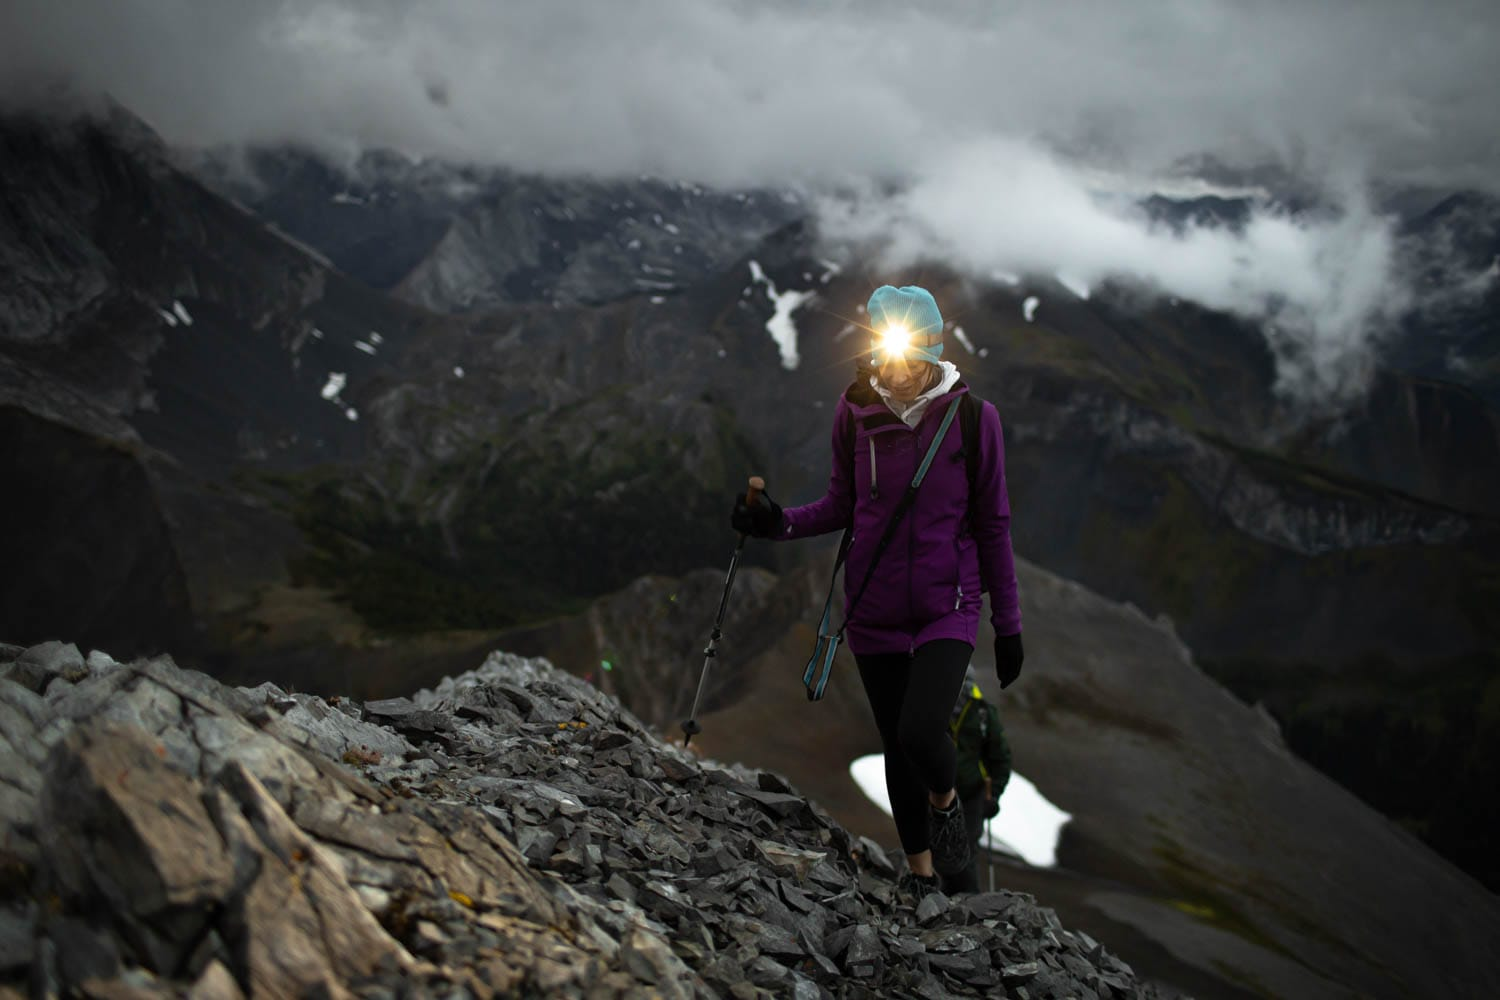 hiking with headlamp